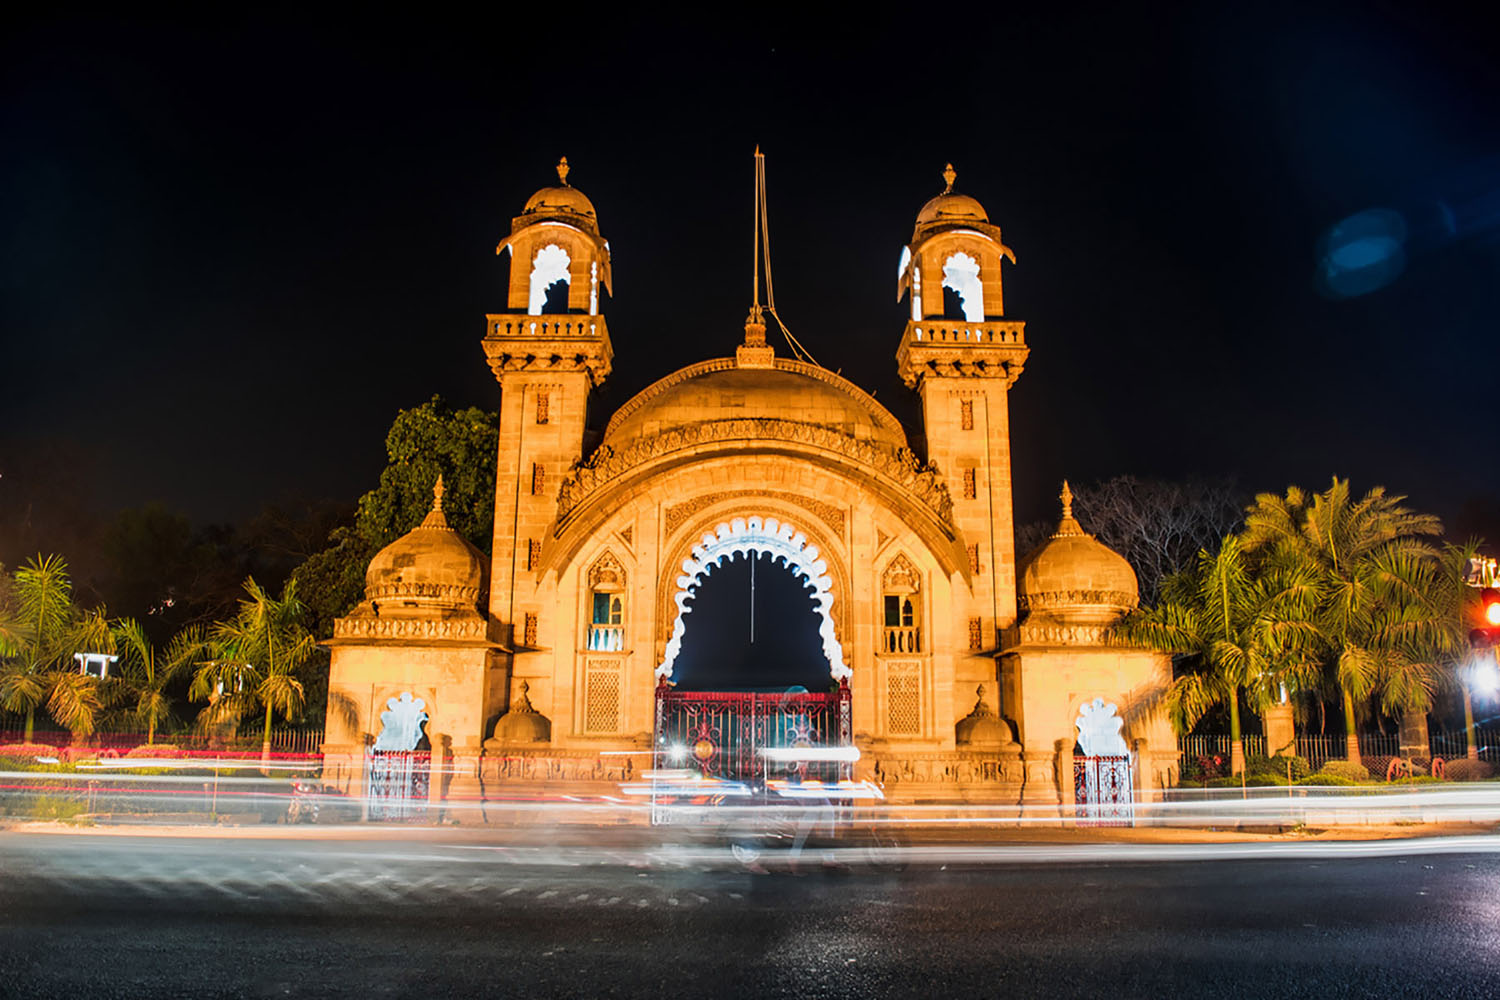 Heritage gate of Rajmahal (Laxmi Vilas Palace) in Vadodara, Gujarat at night